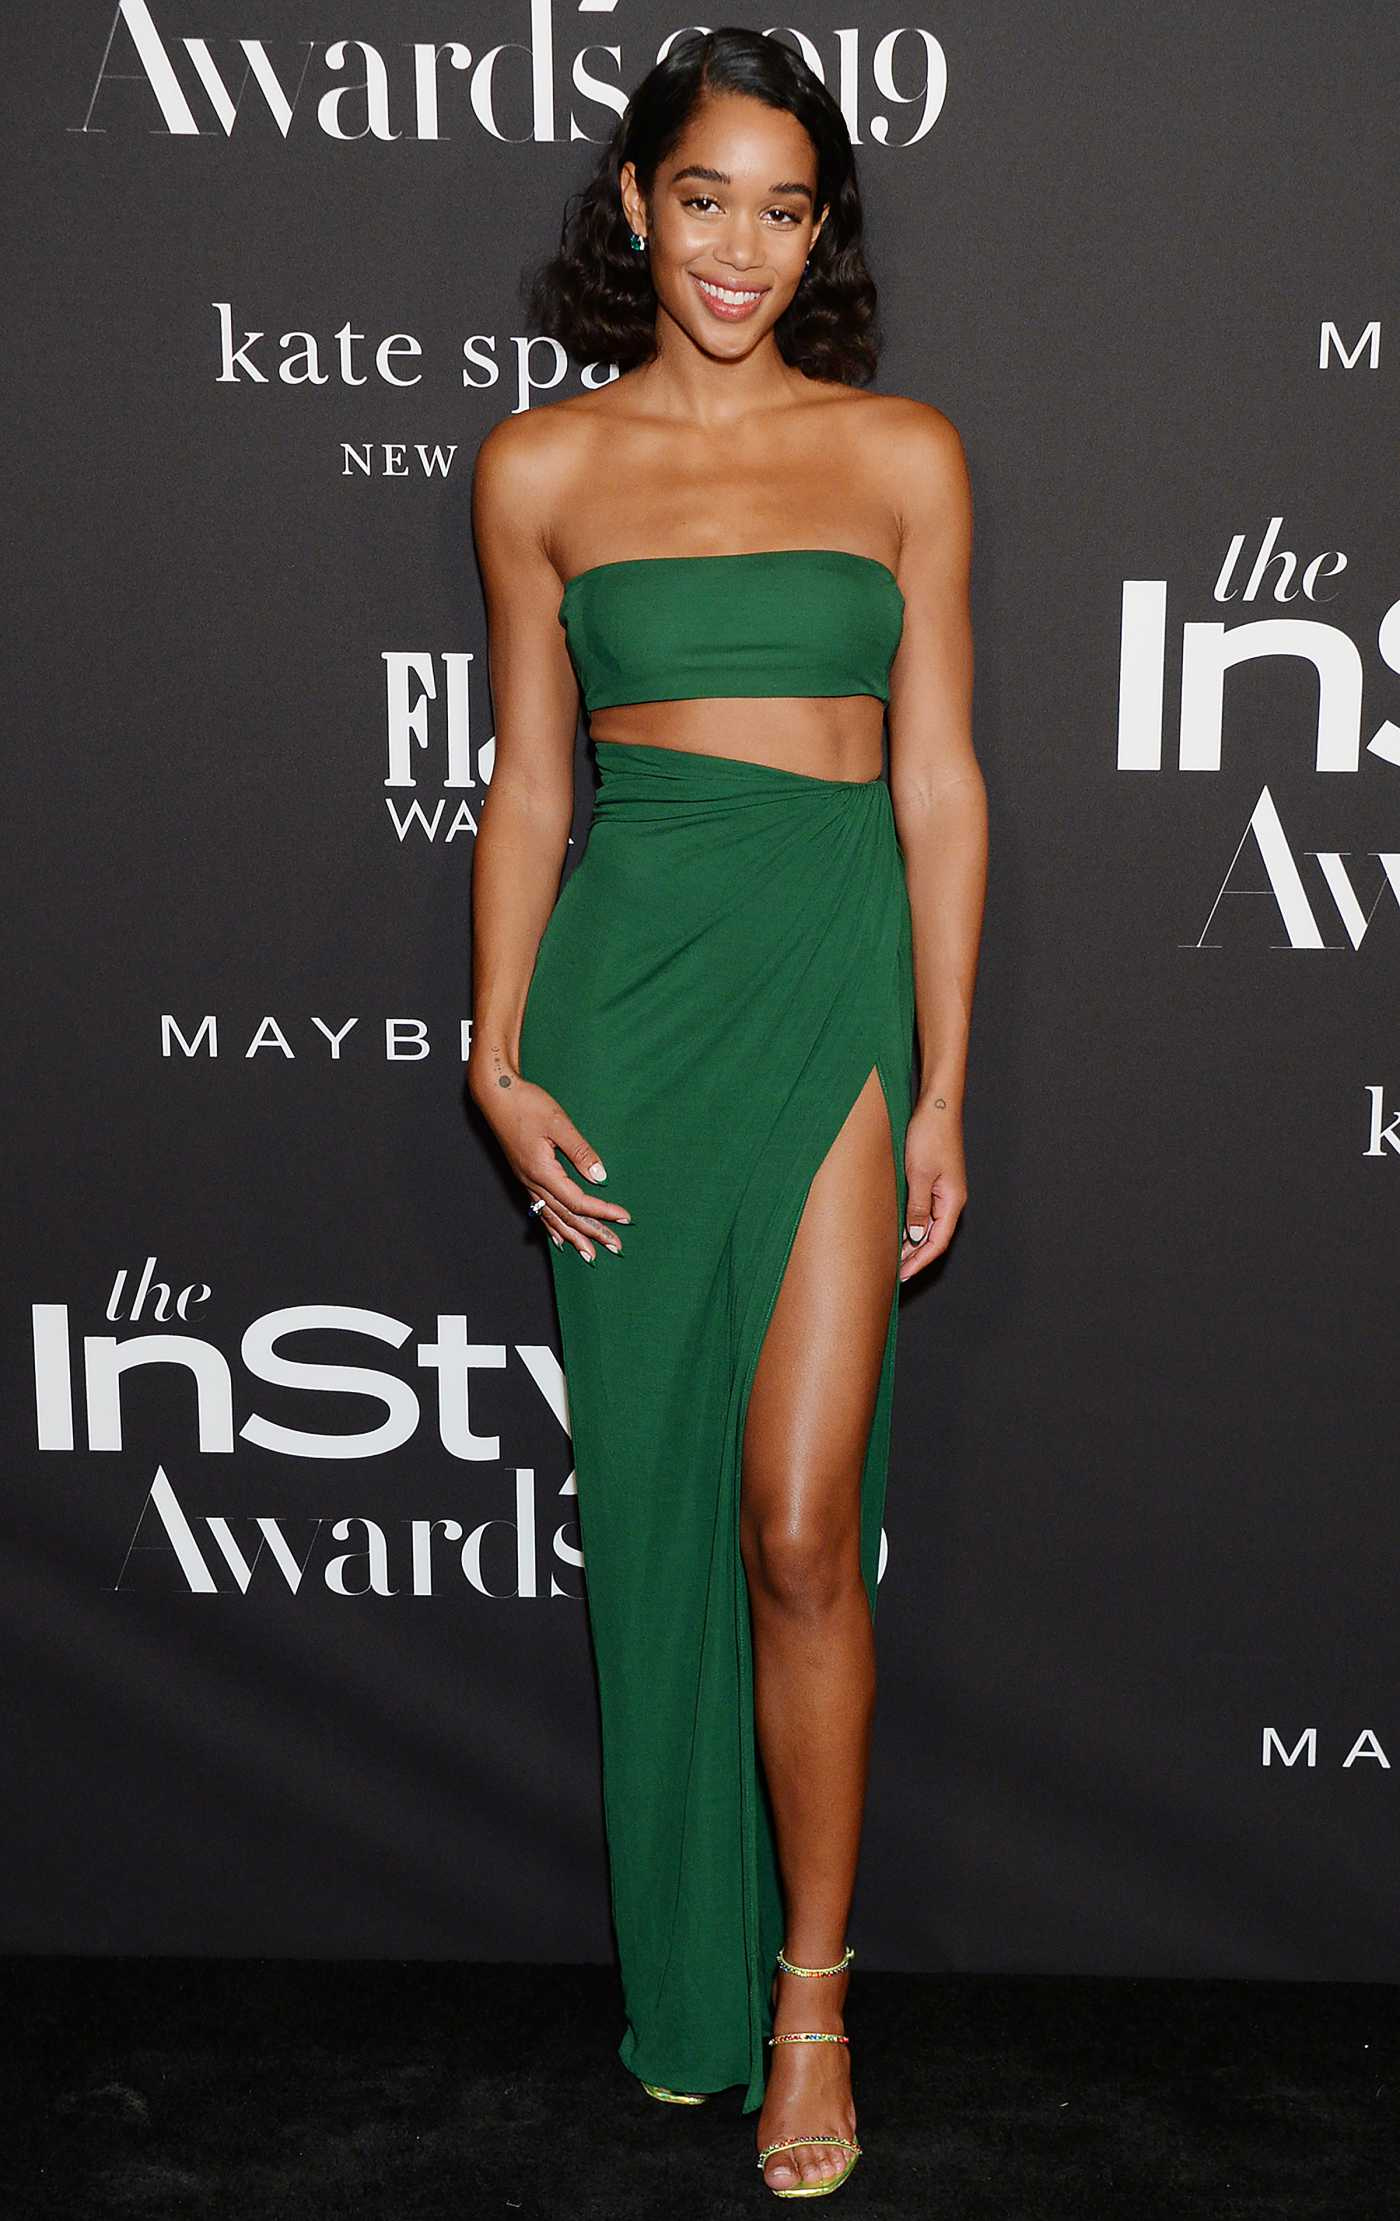 Laura Harrier Attends the 5th Annual InStyle Awards in Los Angeles 10/21/2019